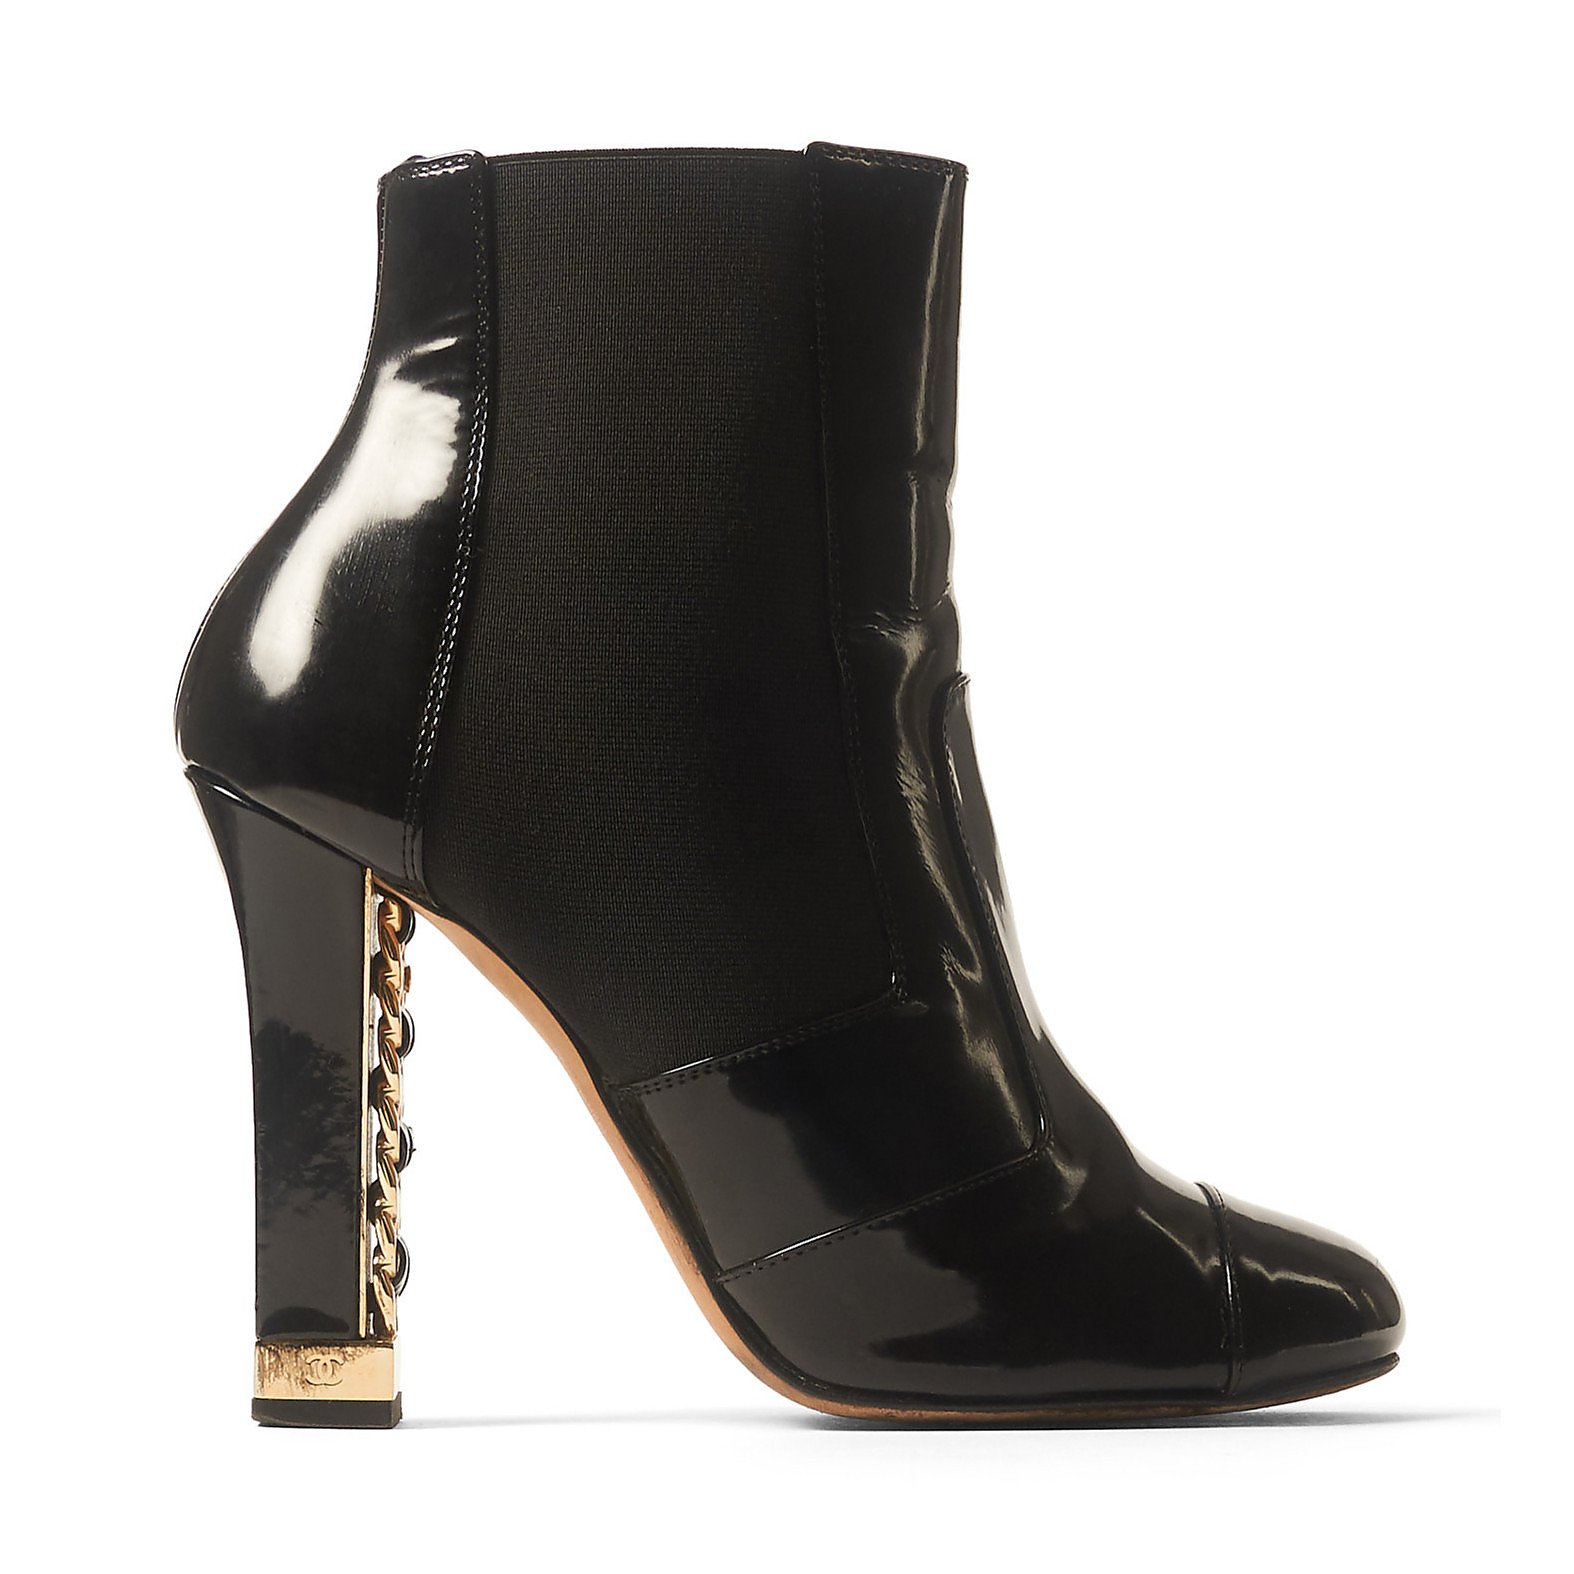 CHANEL Patent High Heel Boots